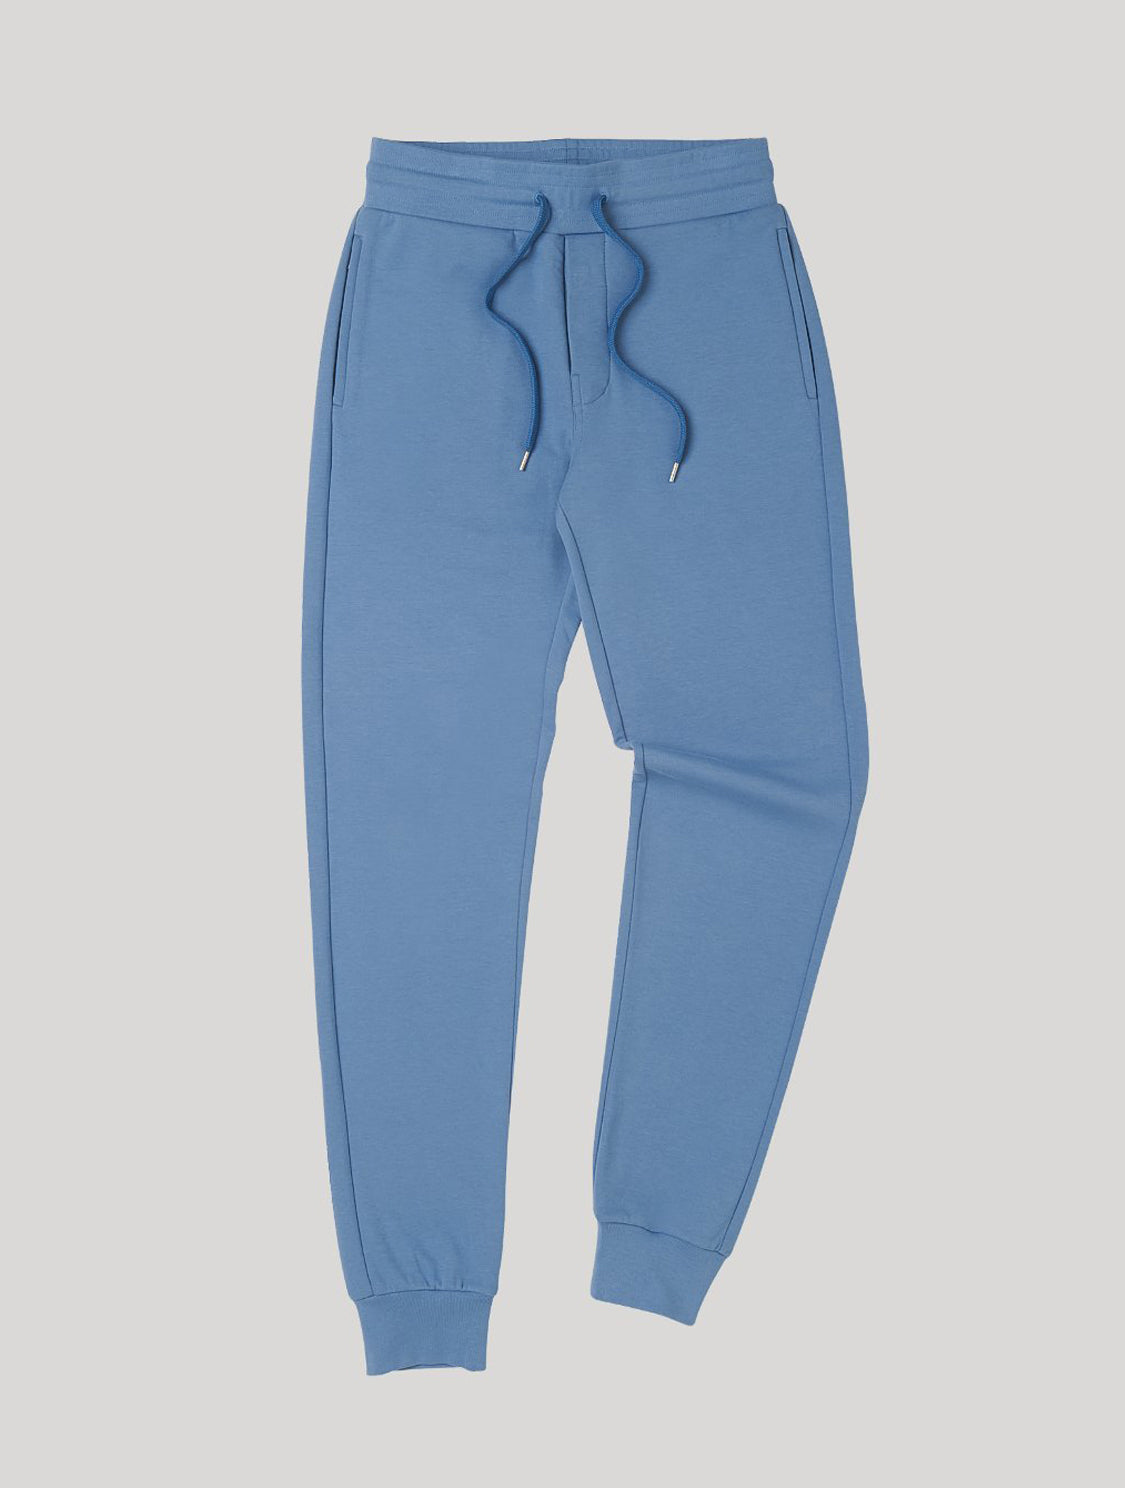 ADRIANO TRACK PANT